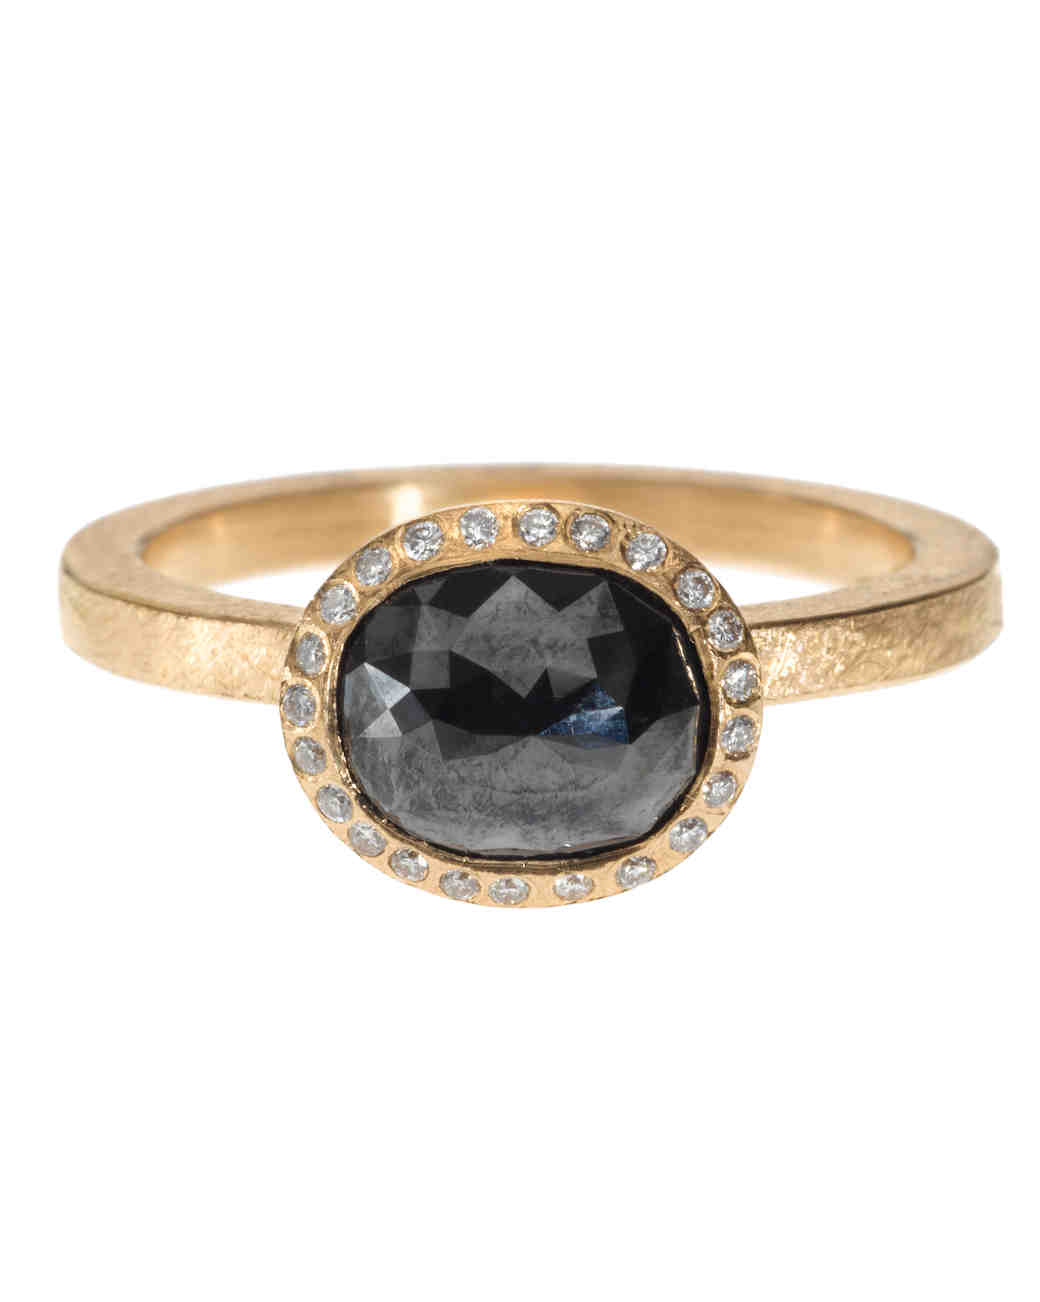 black-diamond-engagement-rings-todd-reed-1-0814.jpg